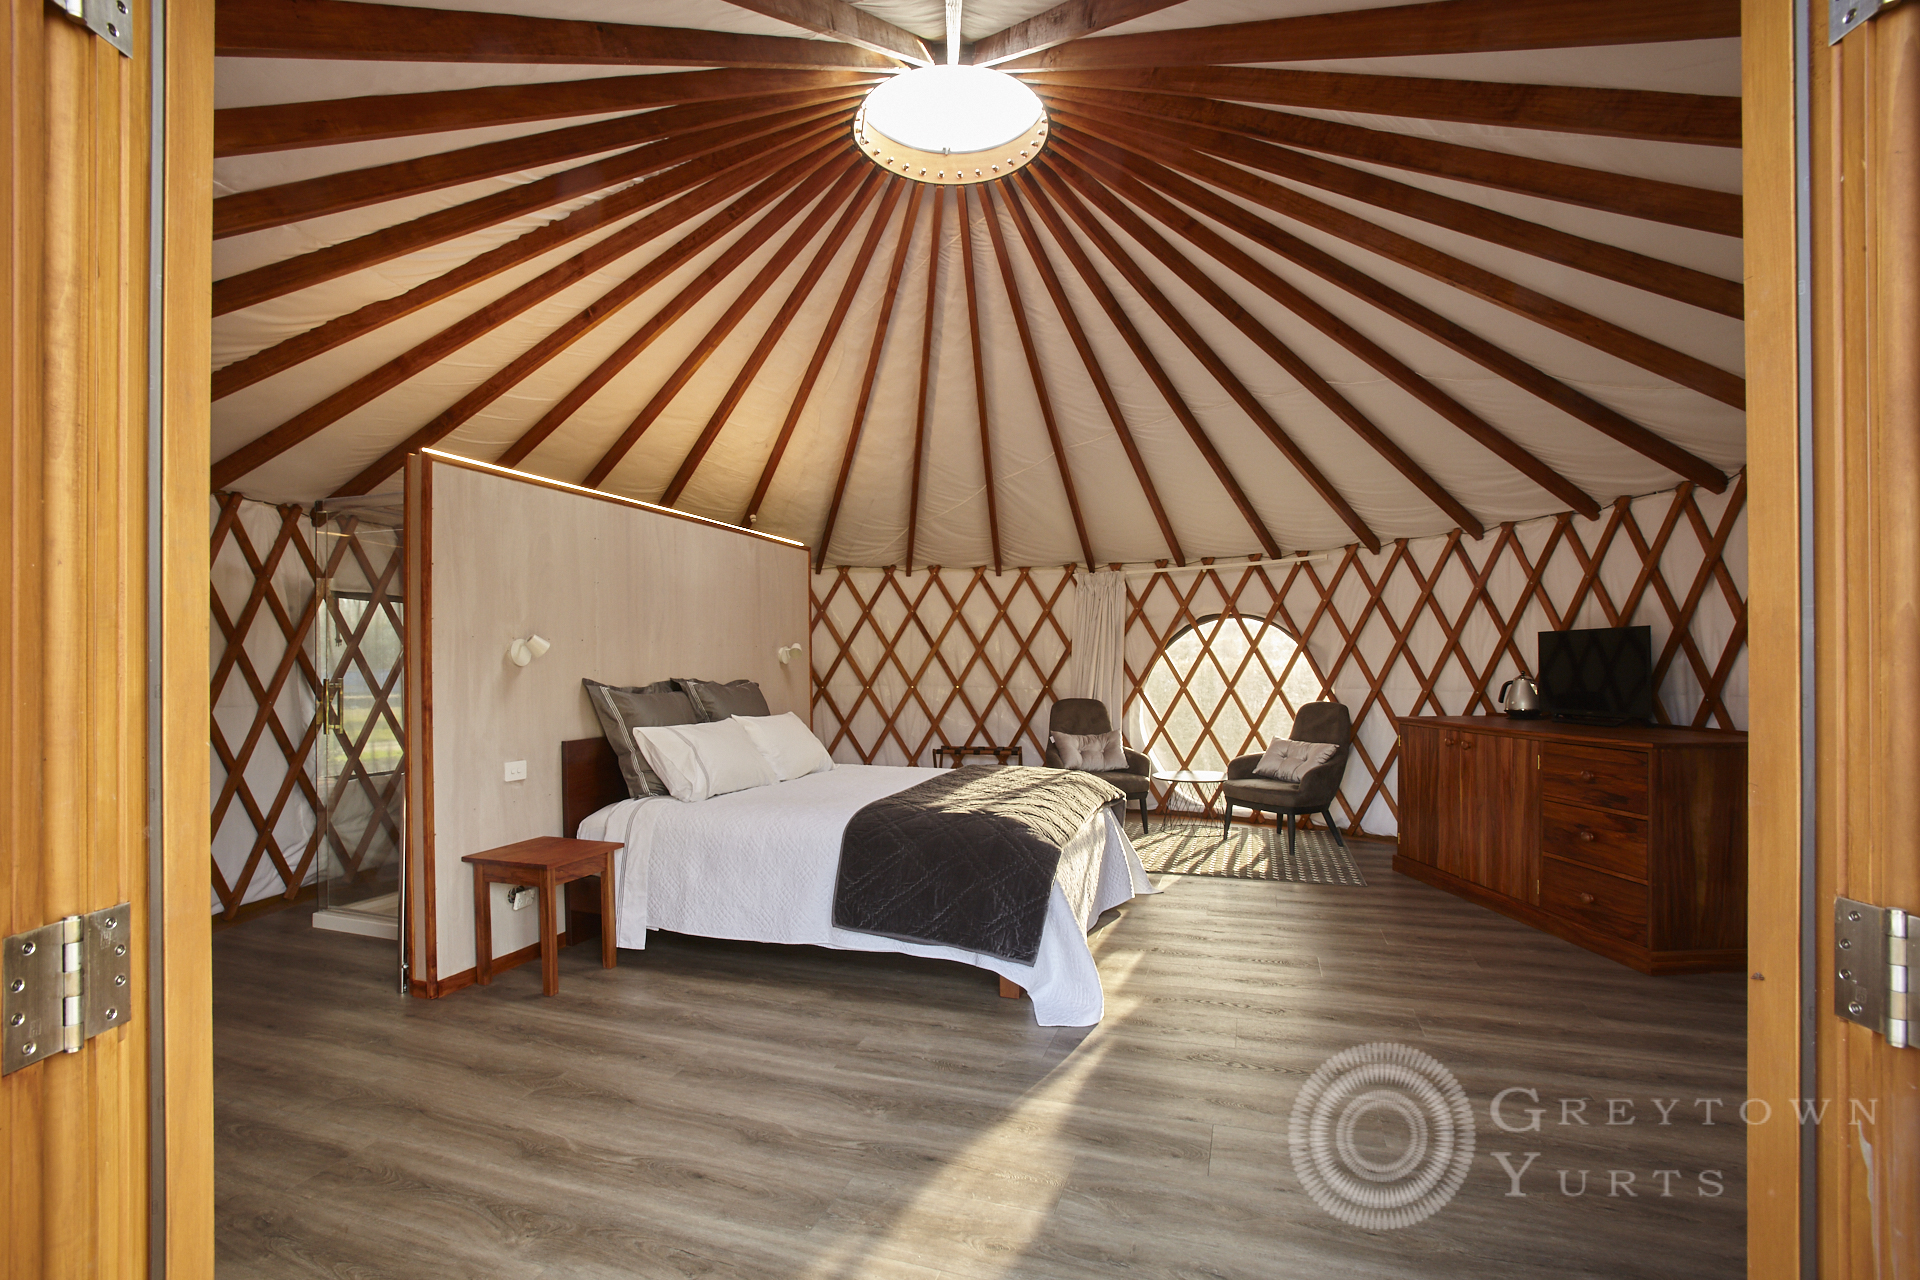 commercial photography of luxury accommodation in Greytown Wairarapa NZ, Greytown Yurts